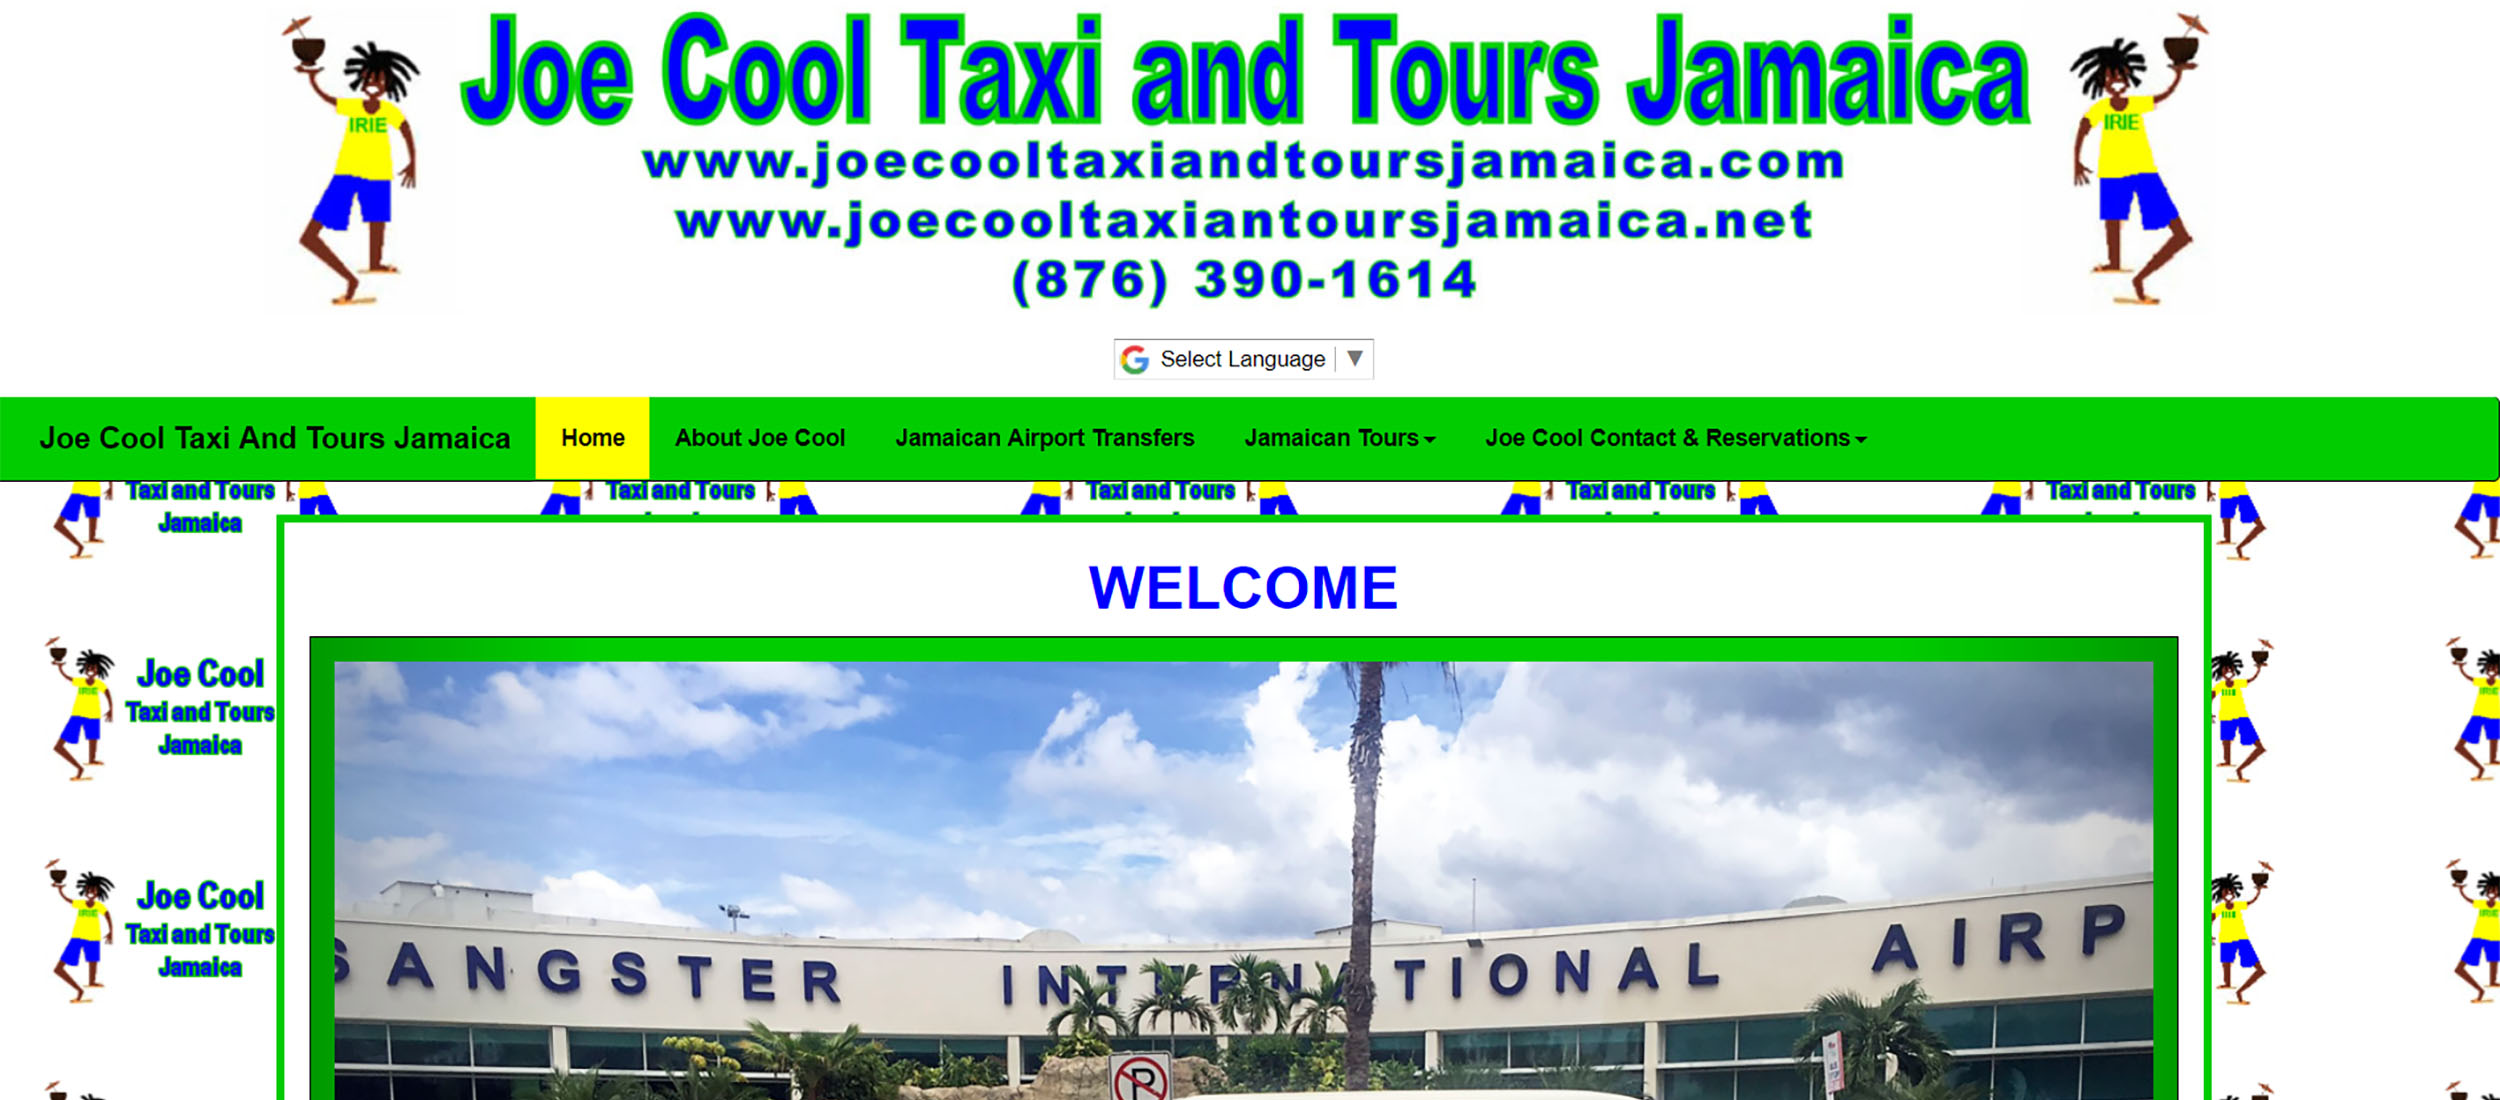 Joe Cool Taxi and Tours Jamaica by Barry J. Hough Sr.